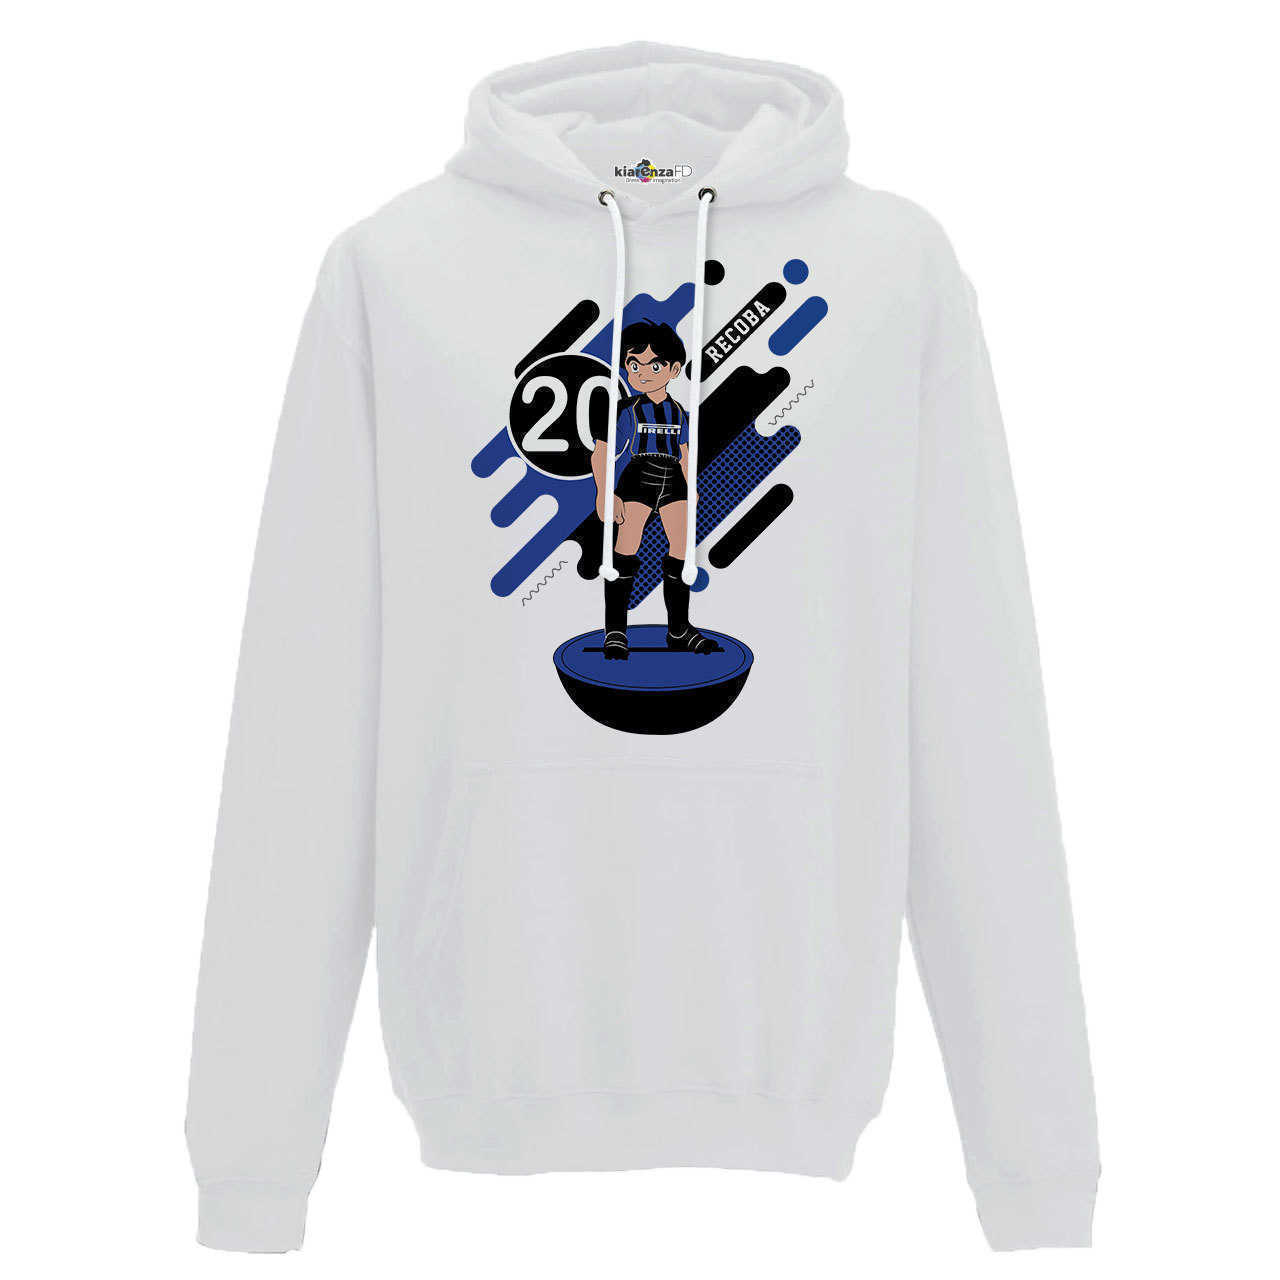 Hood Sweatshirt <font><b>Soccer</b></font> Manga Recoba <font><b>Inter</b></font> <font><b>Milan</b></font> Legend Spoof Subbuteo Holly and Benji S image